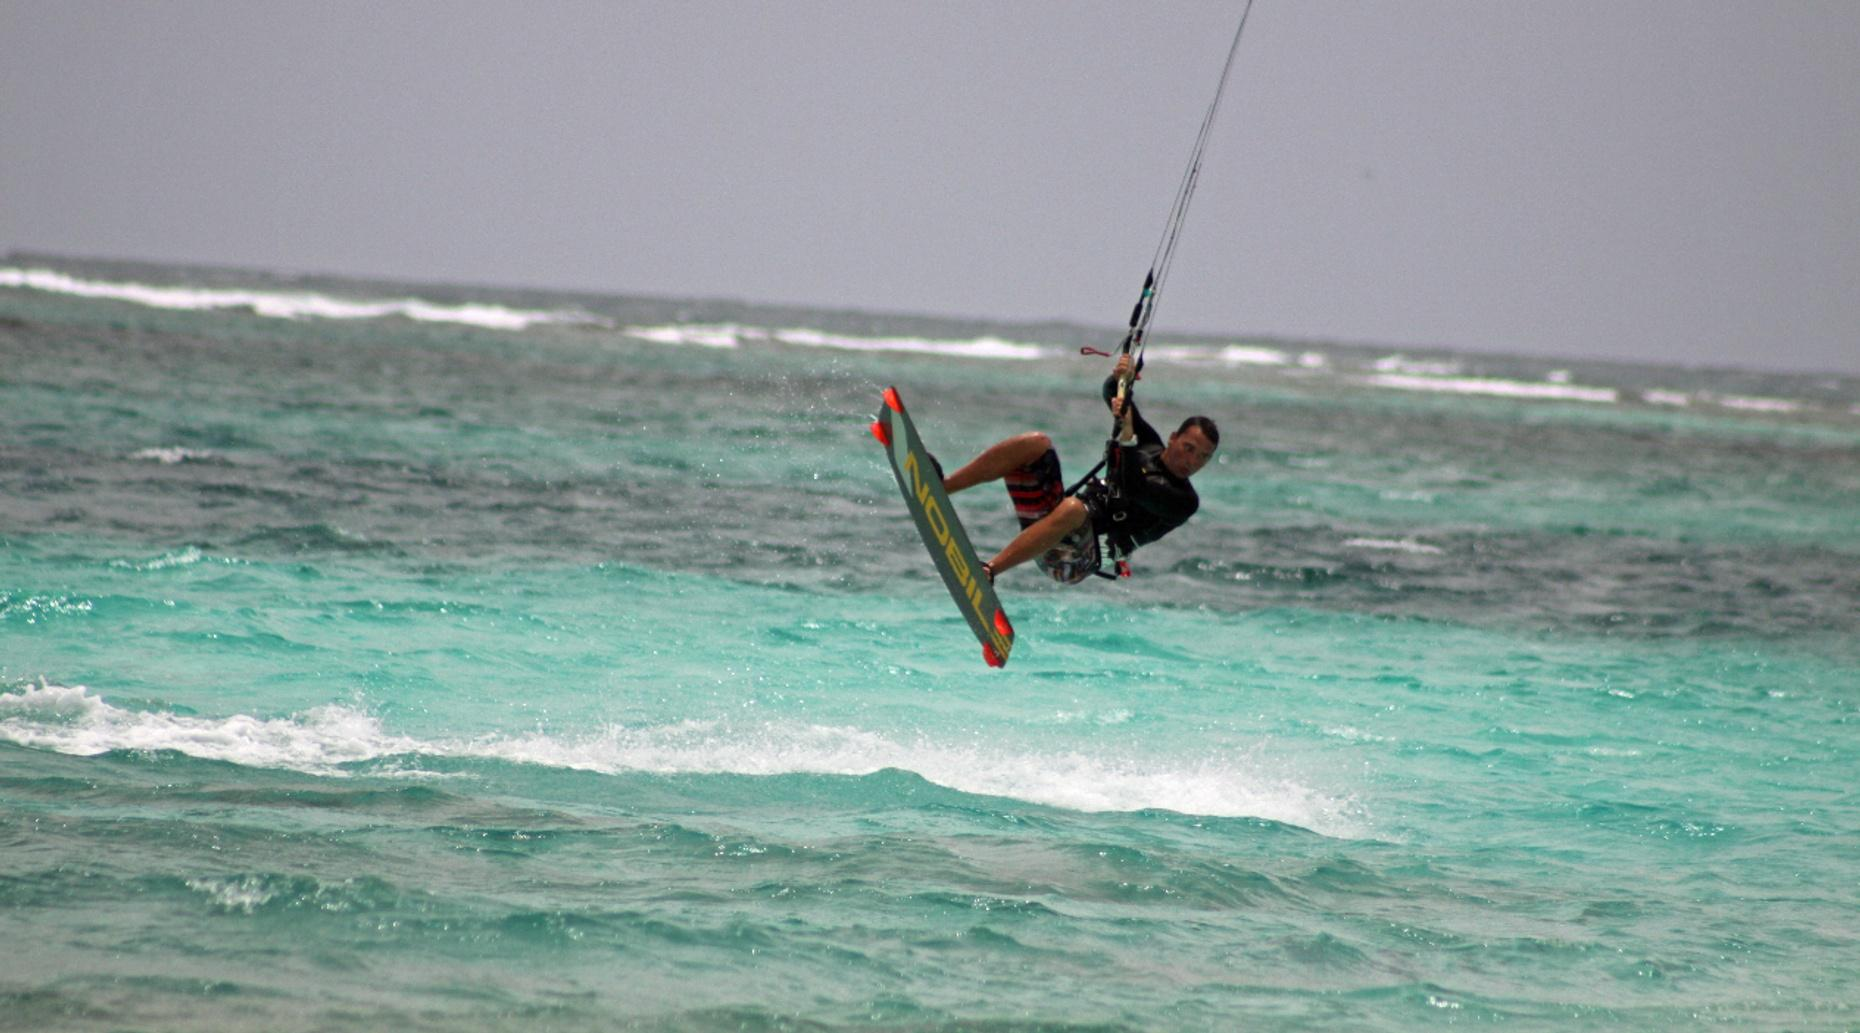 One-Hour Kitesurfing Lesson in Fort Lauderdale